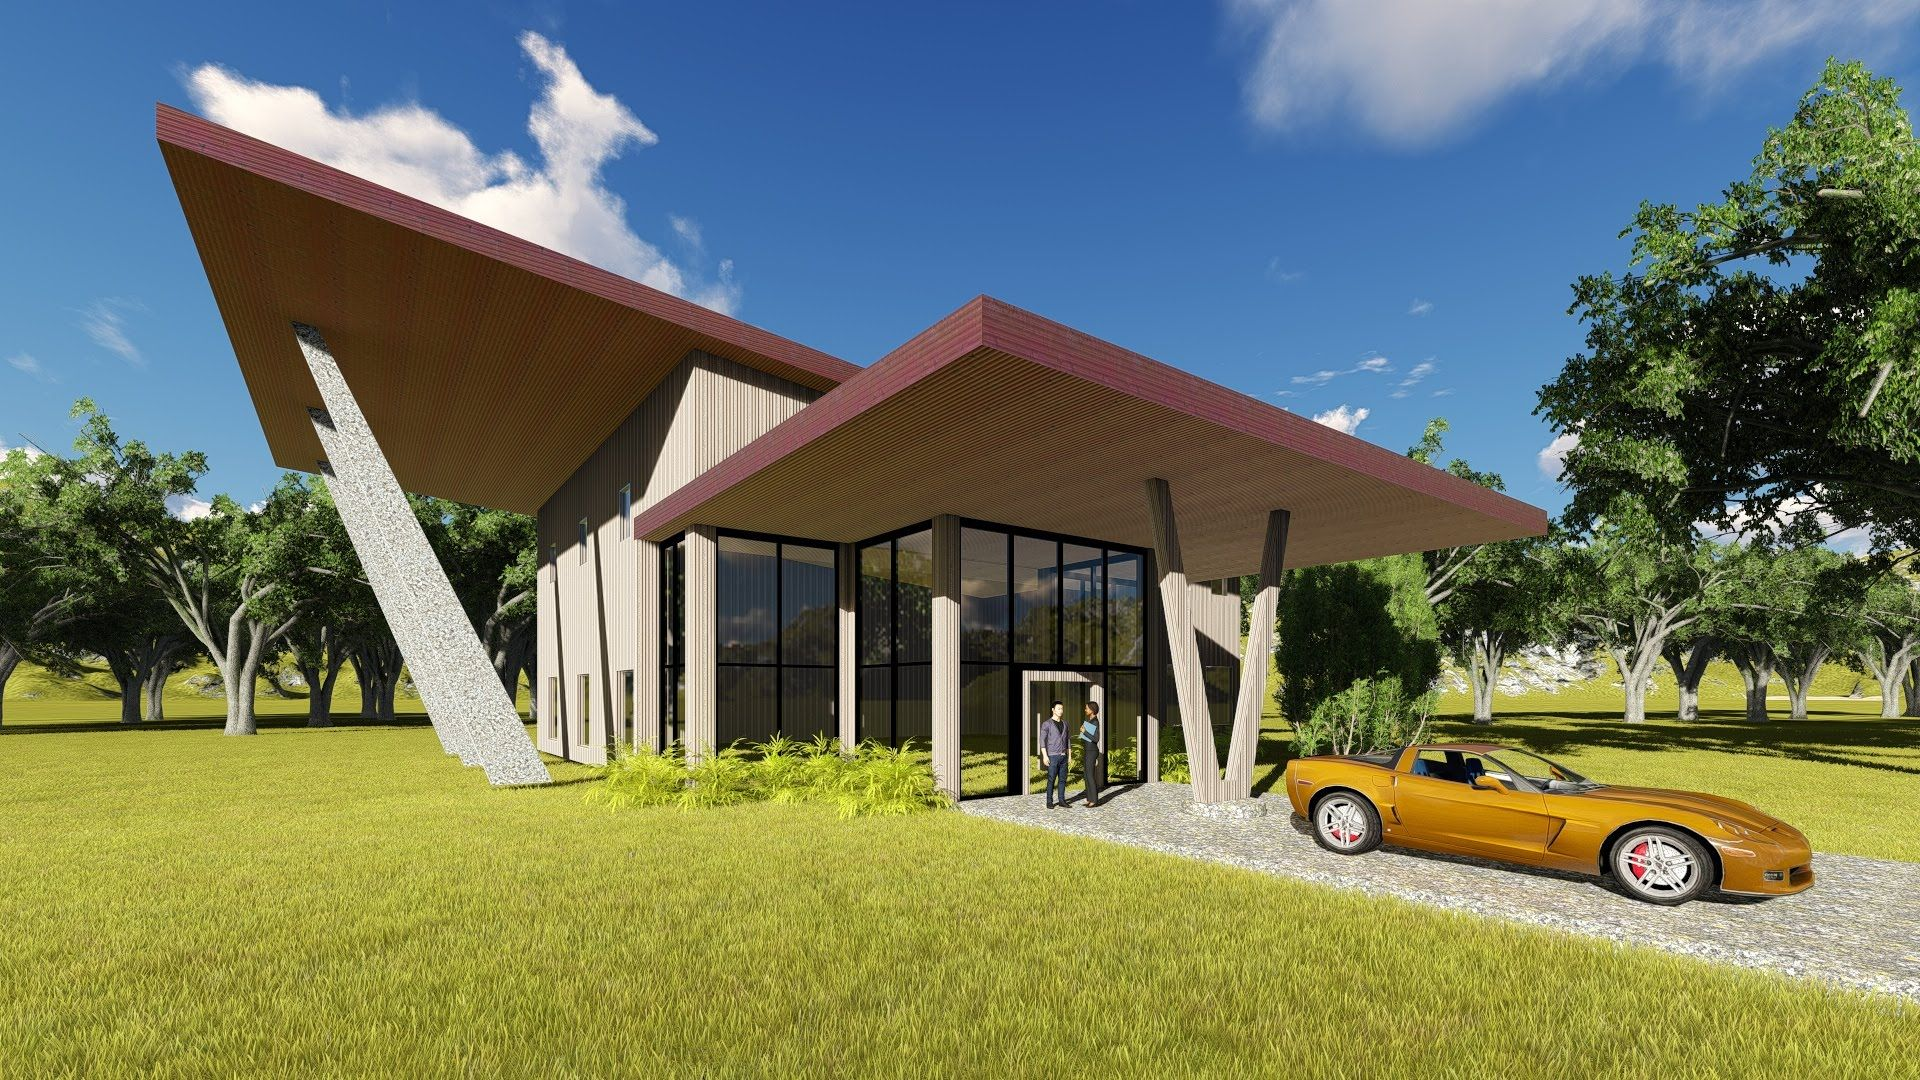 Revit lumion tutorial modern house architecture for Modern house tutorial